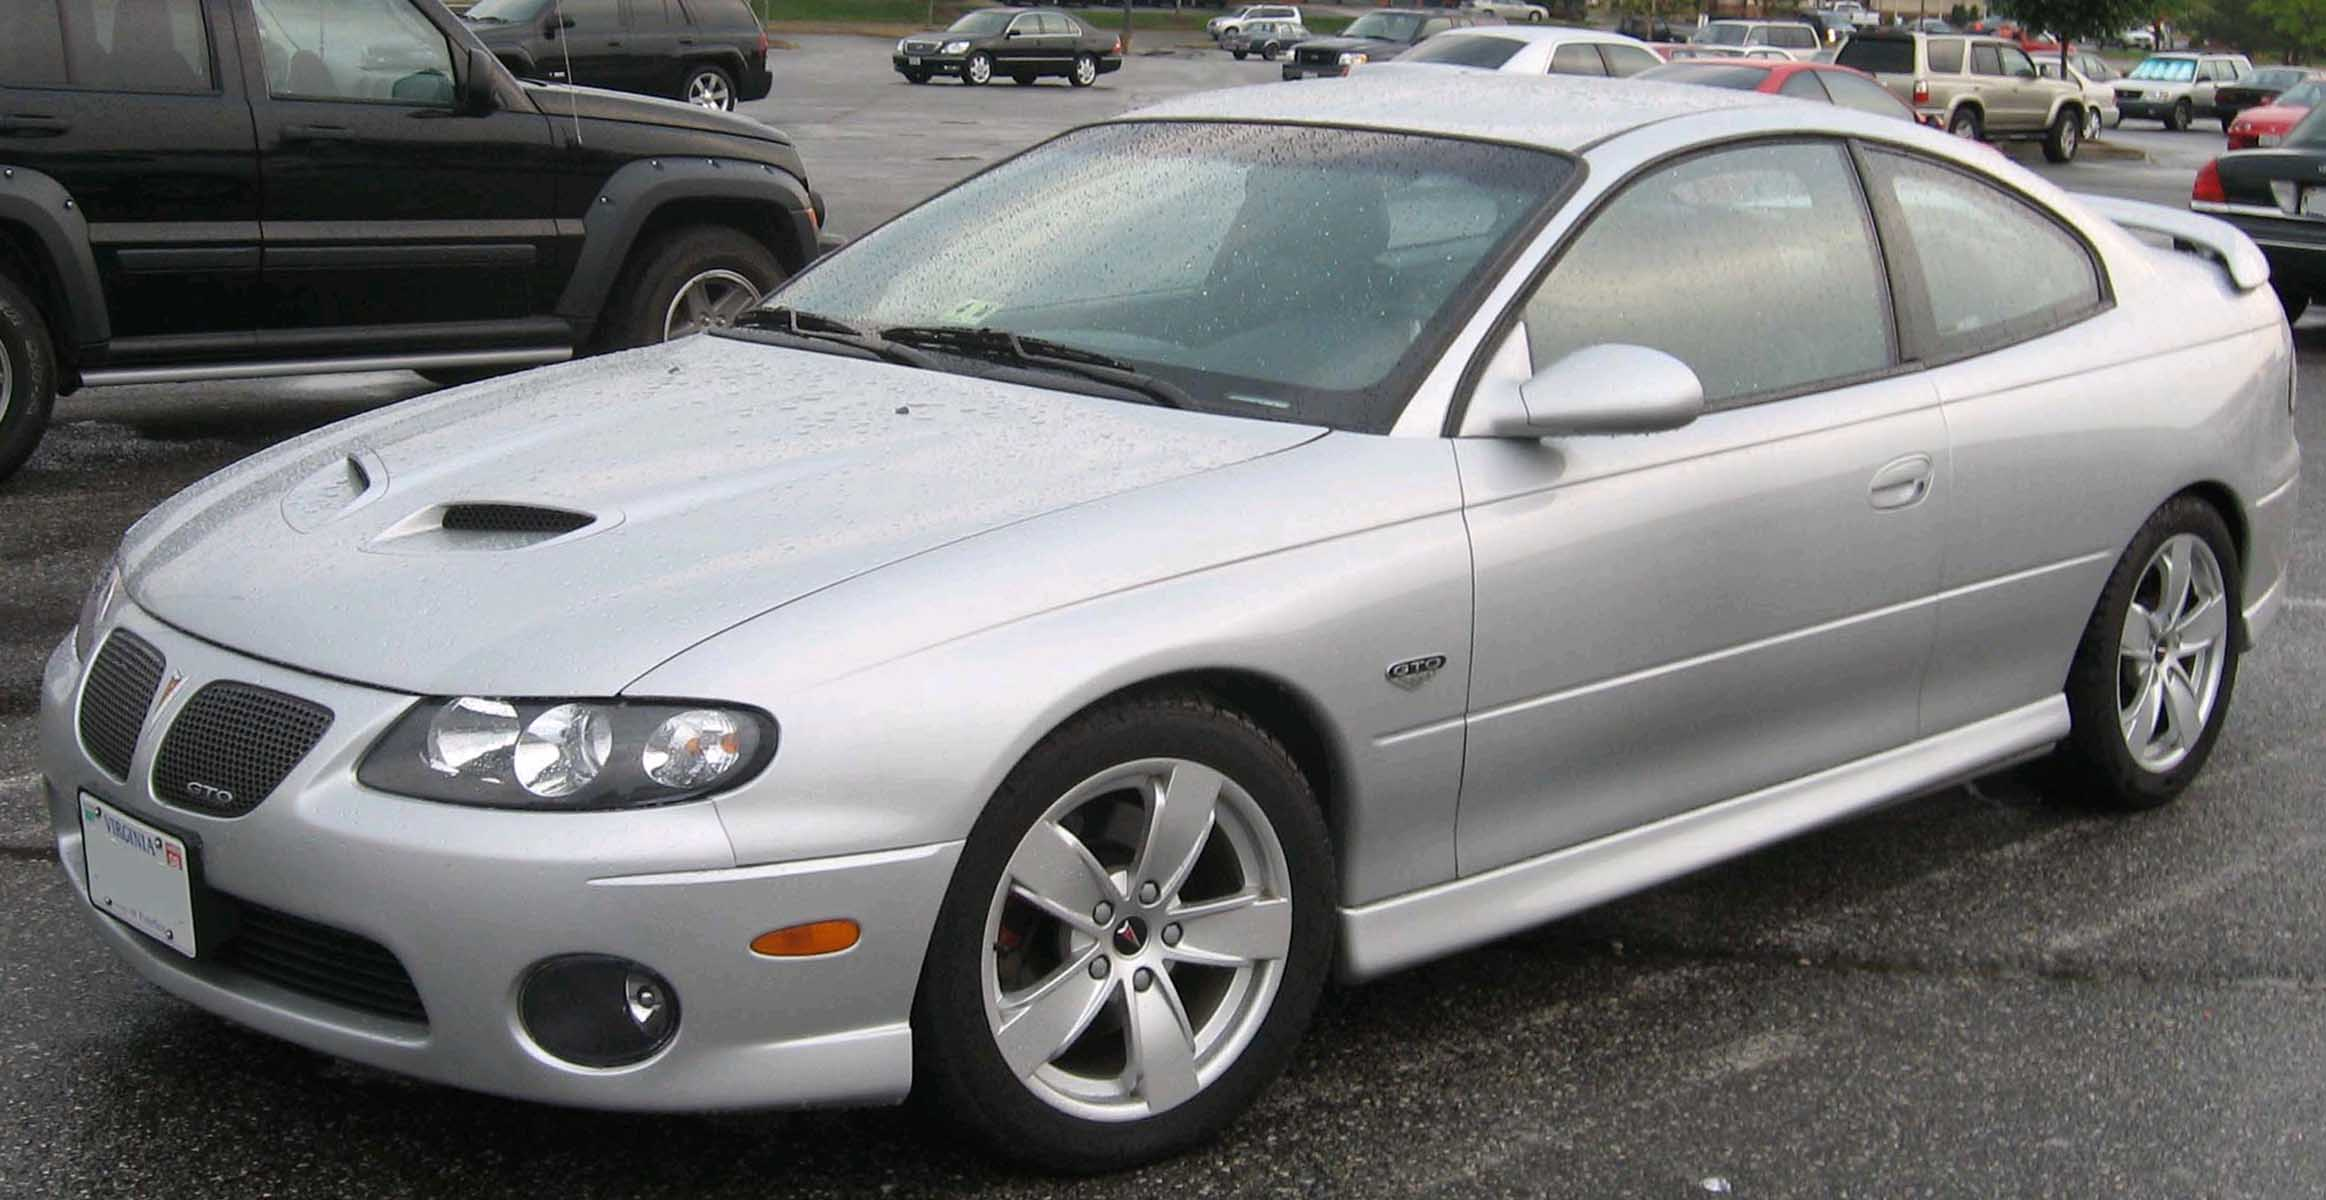 File:2006-Pontiac-GTO.jpg - Wikimedia Commons